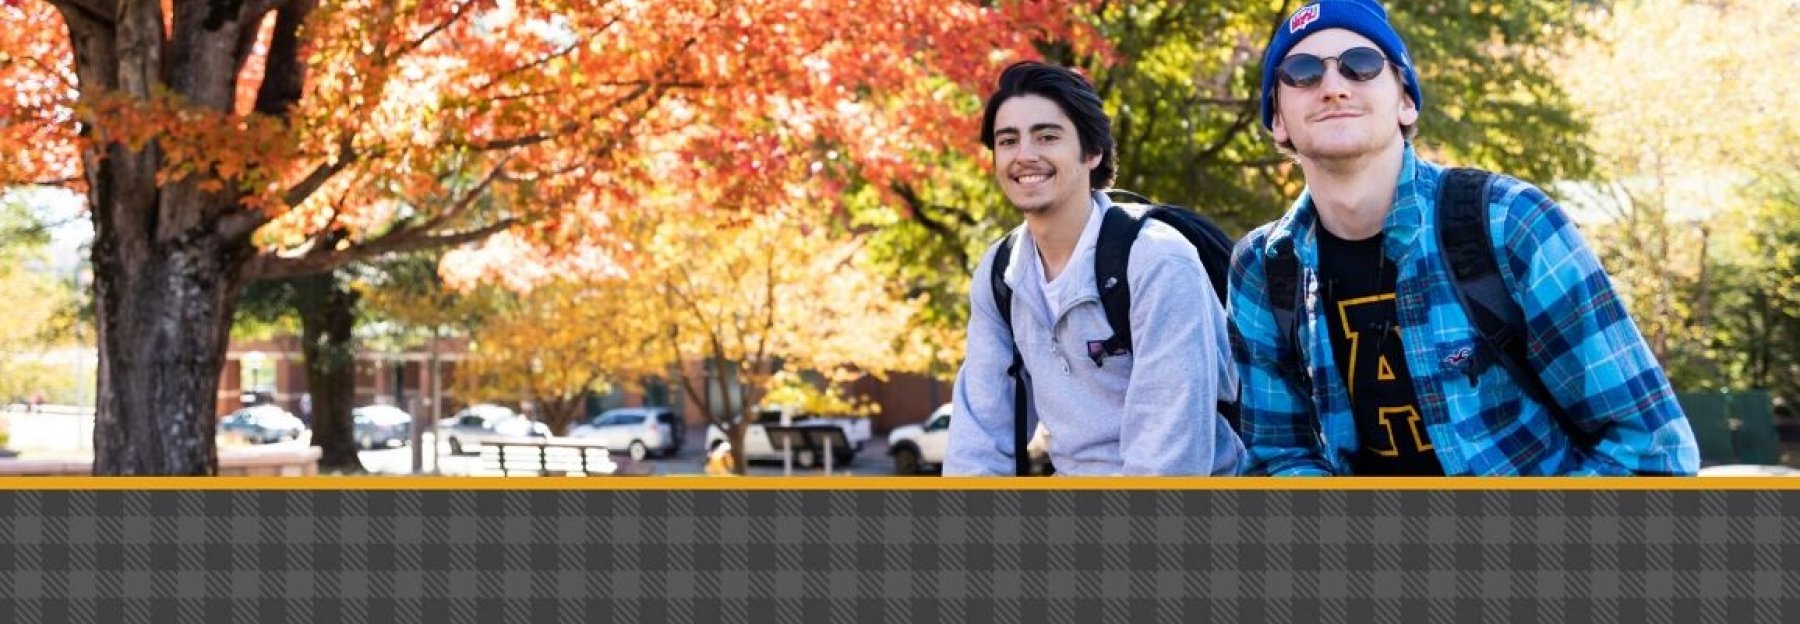 App State Students enjoying the fall weather on campus